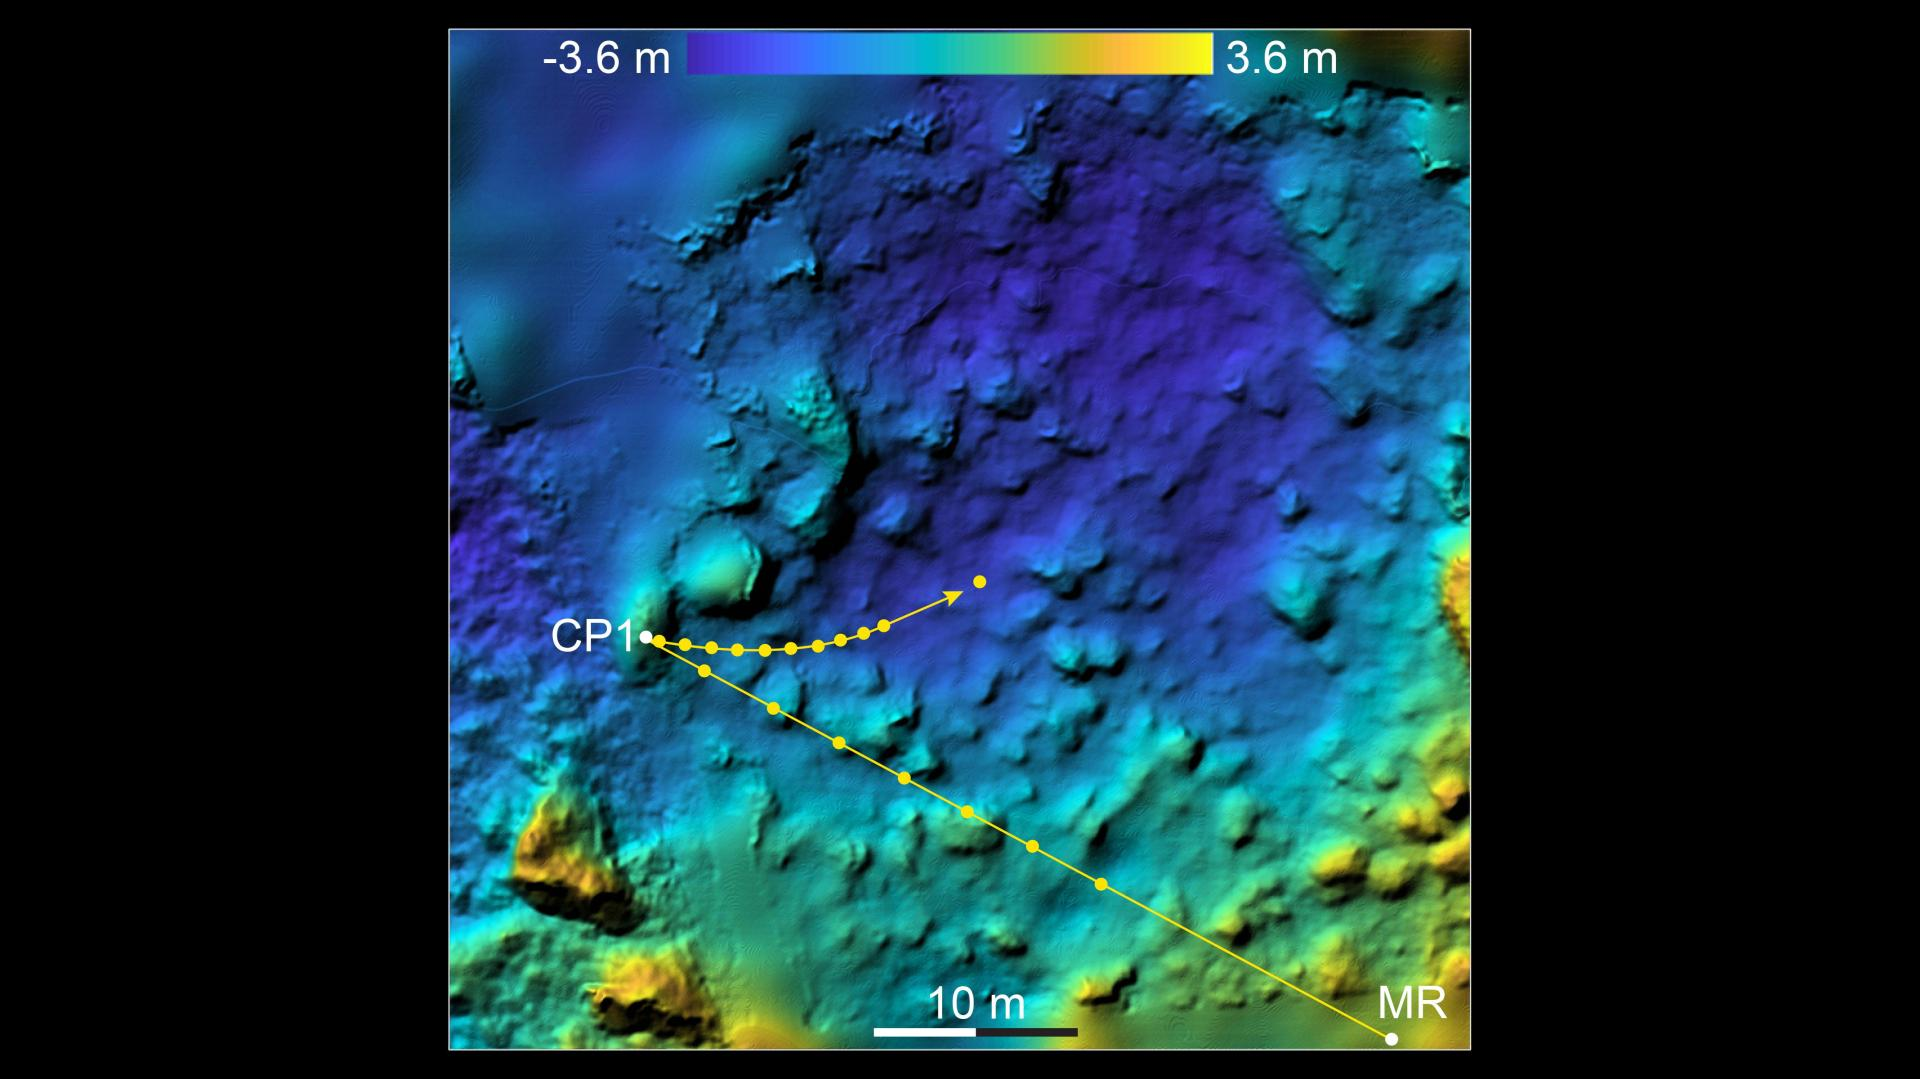 MASCOT's descent and path across the surface of Ryugu